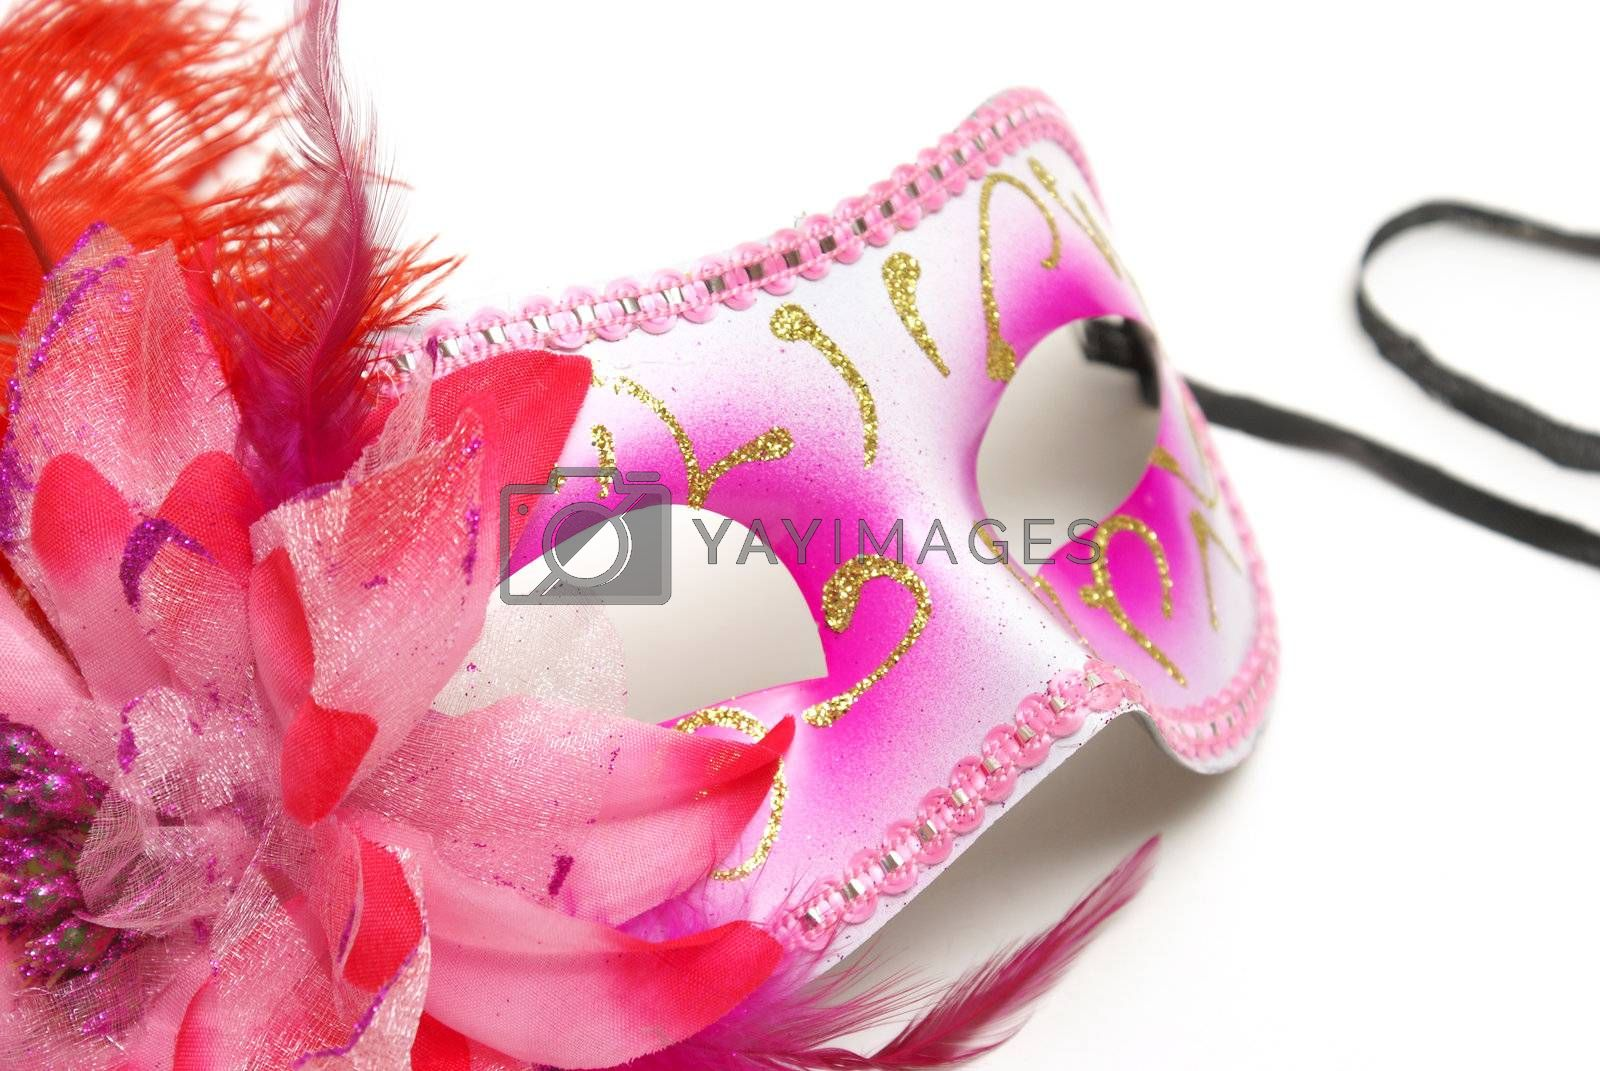 A feminine venetian mask on a white background for concealing your identity at festivities.